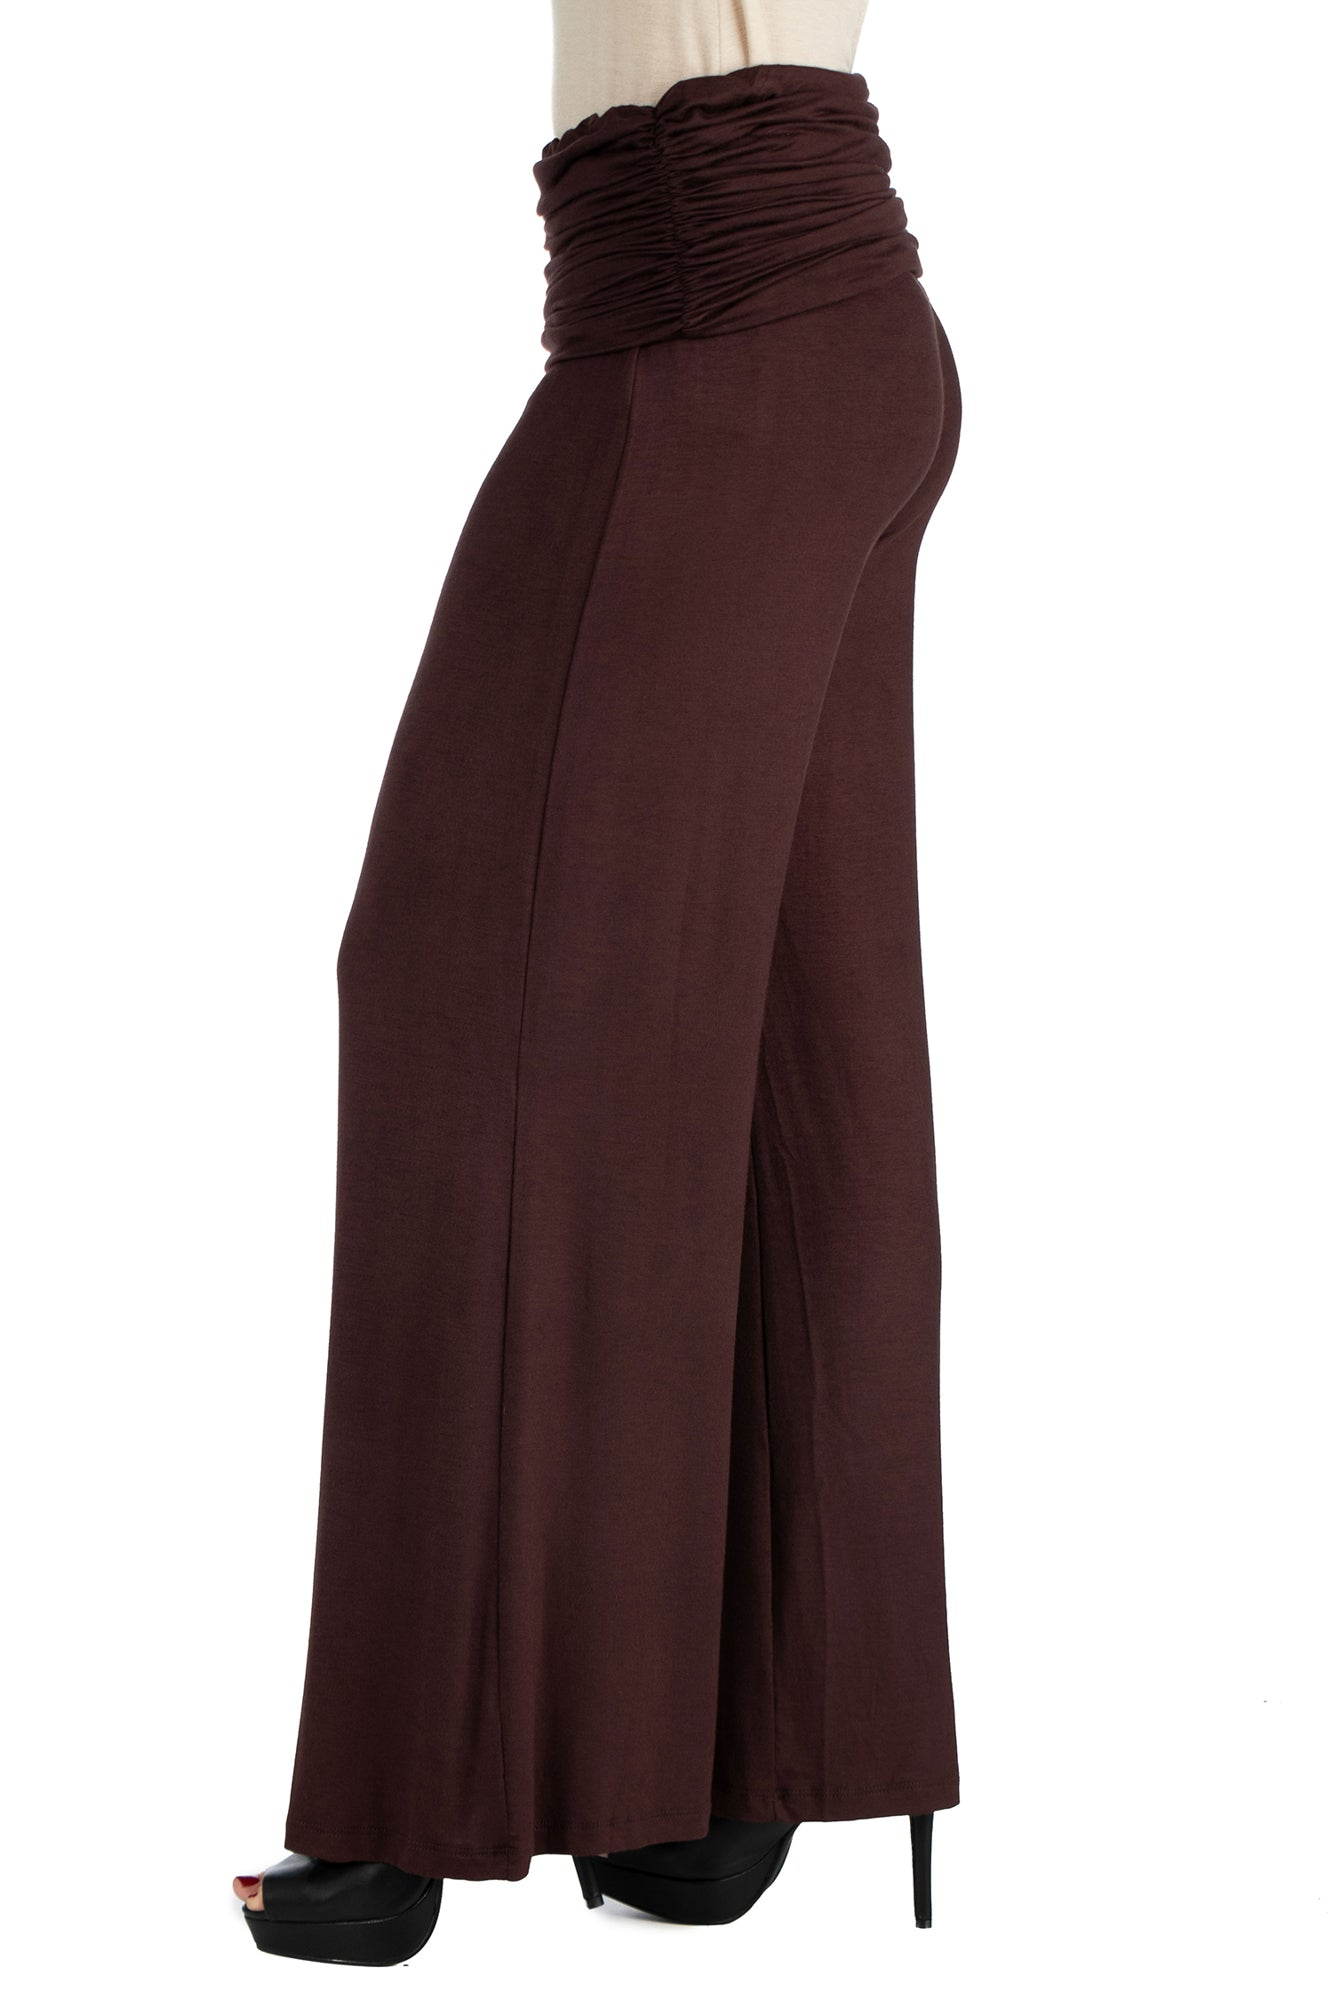 24seven Comfort Apparel Womens Fold Over Elastic Waist Palazzo Pants-PANTS-24Seven Comfort Apparel-BROWN-S-24/7 Comfort Apparel